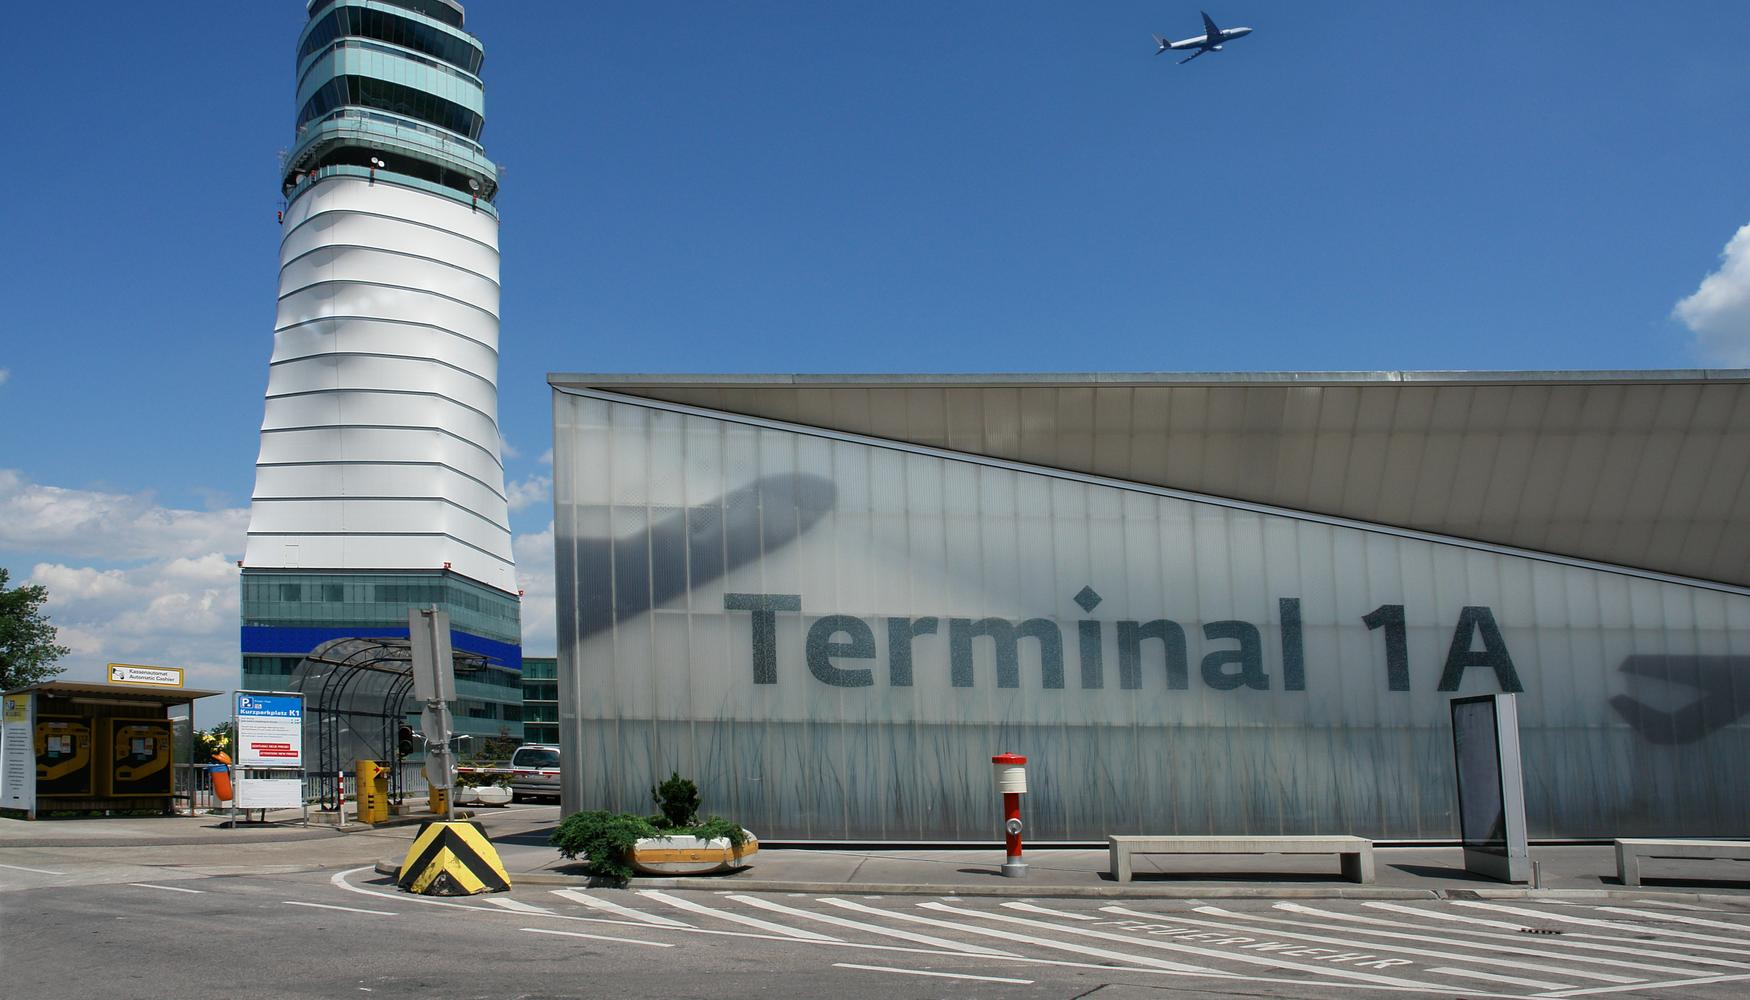 Car hire at Vienna Intl Airport